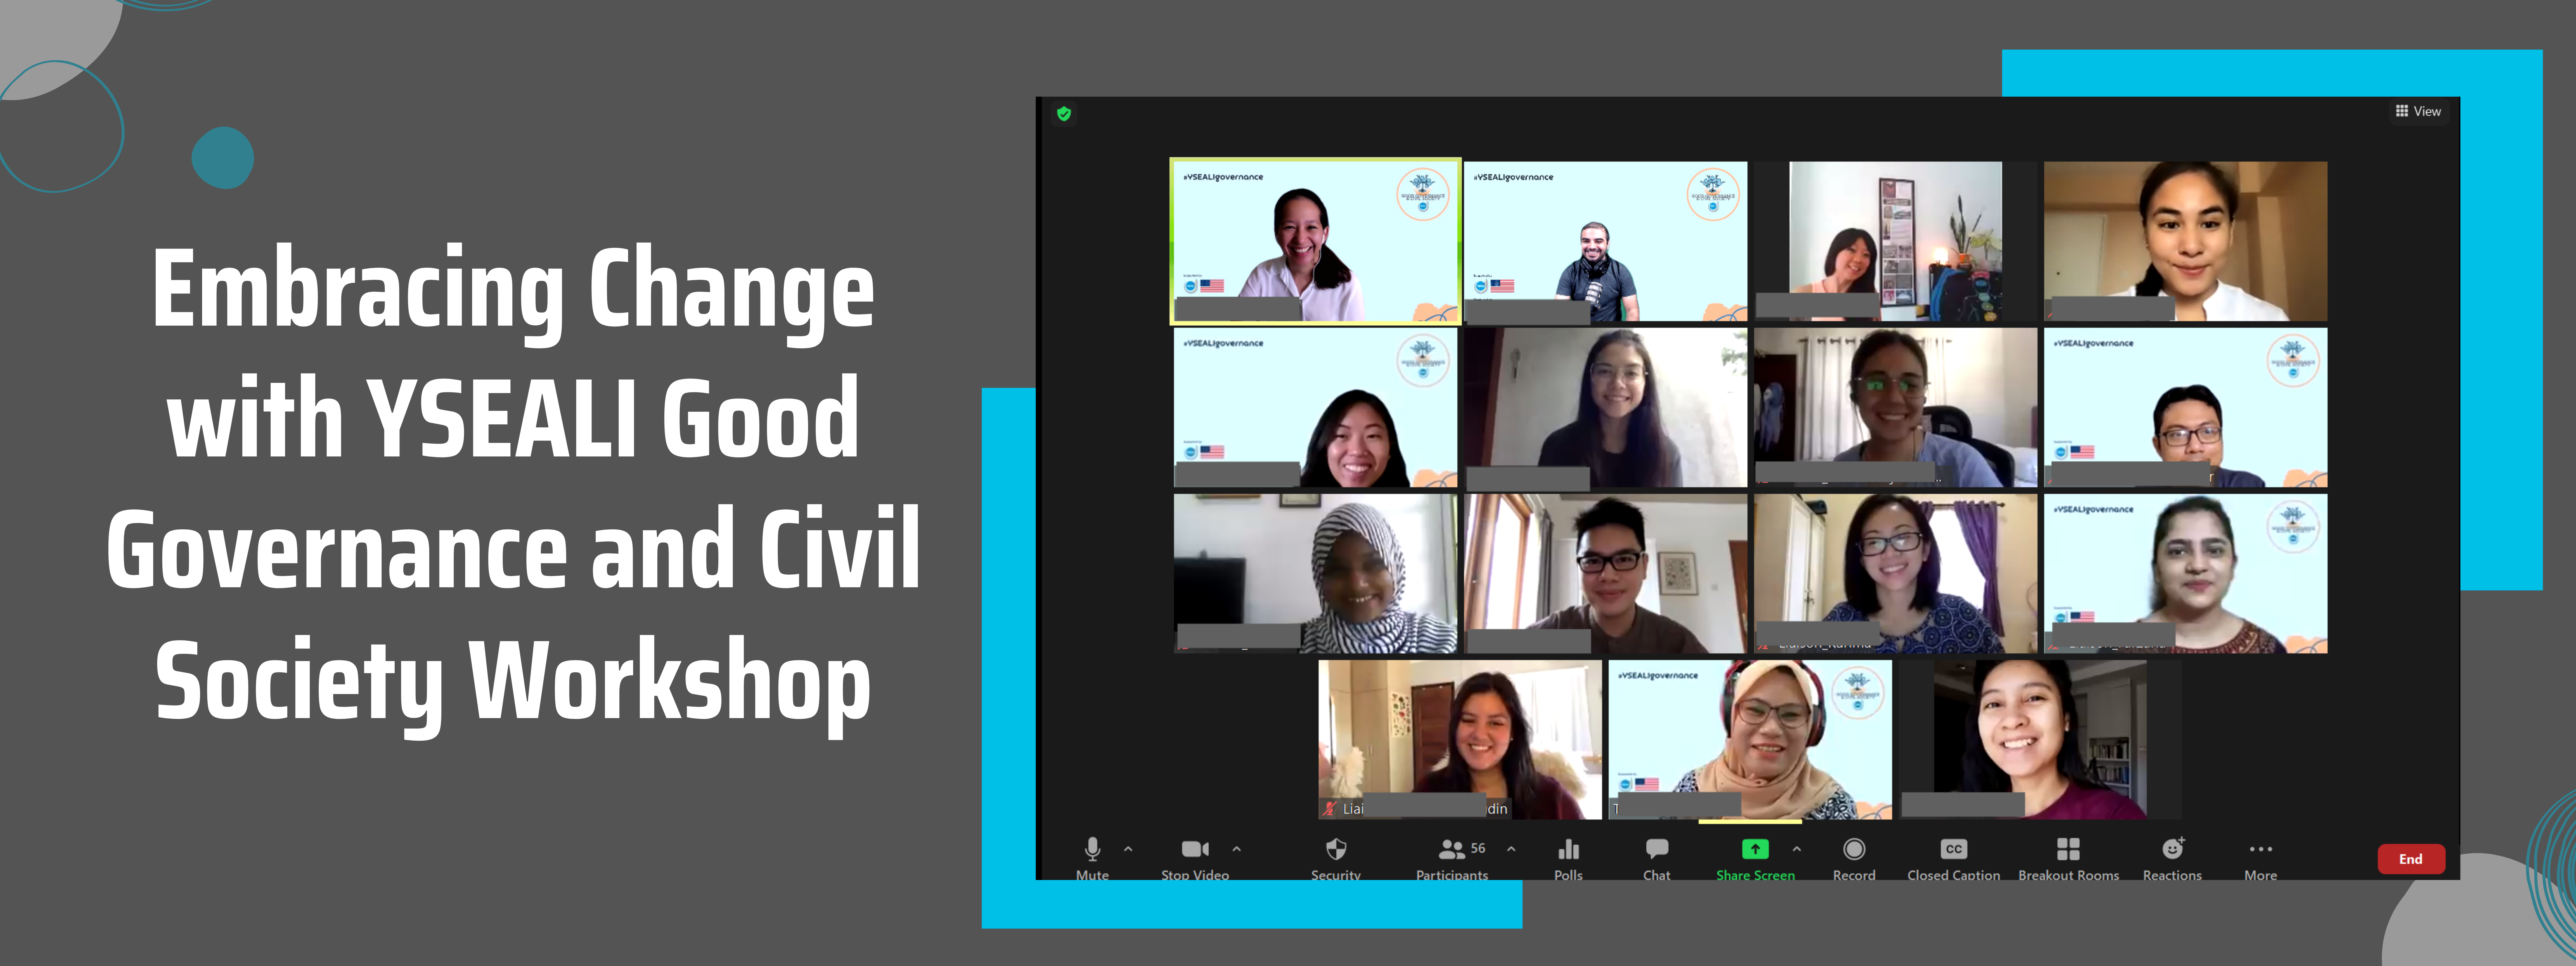 Embracing Change with YSEALI Good Governance and Civil Society Workshop